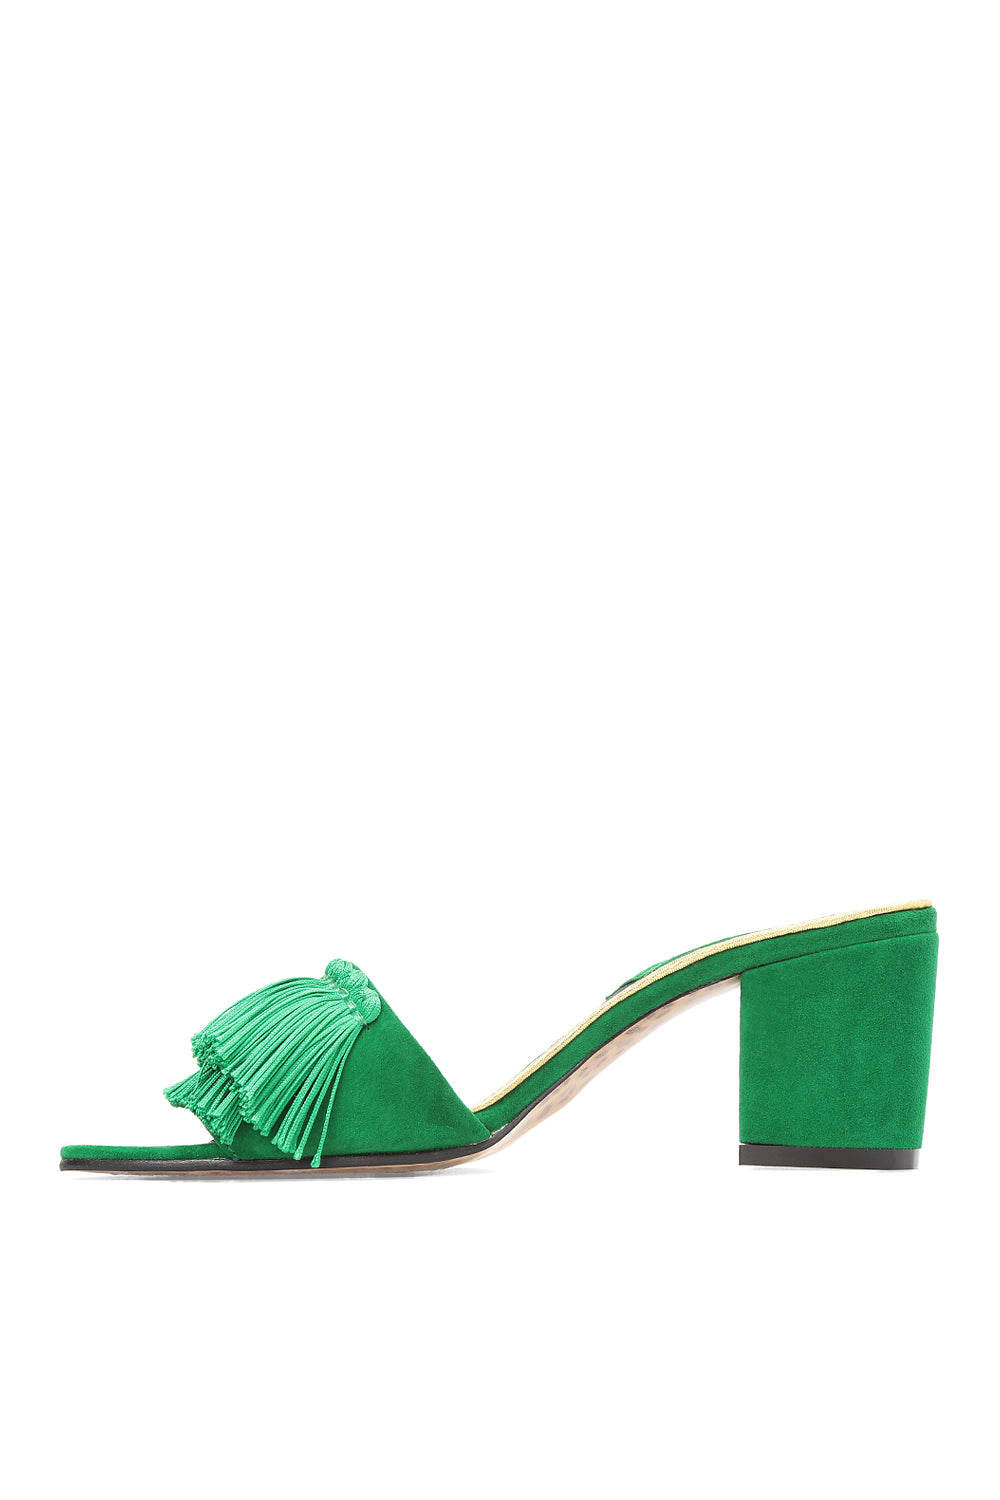 Green leather mules